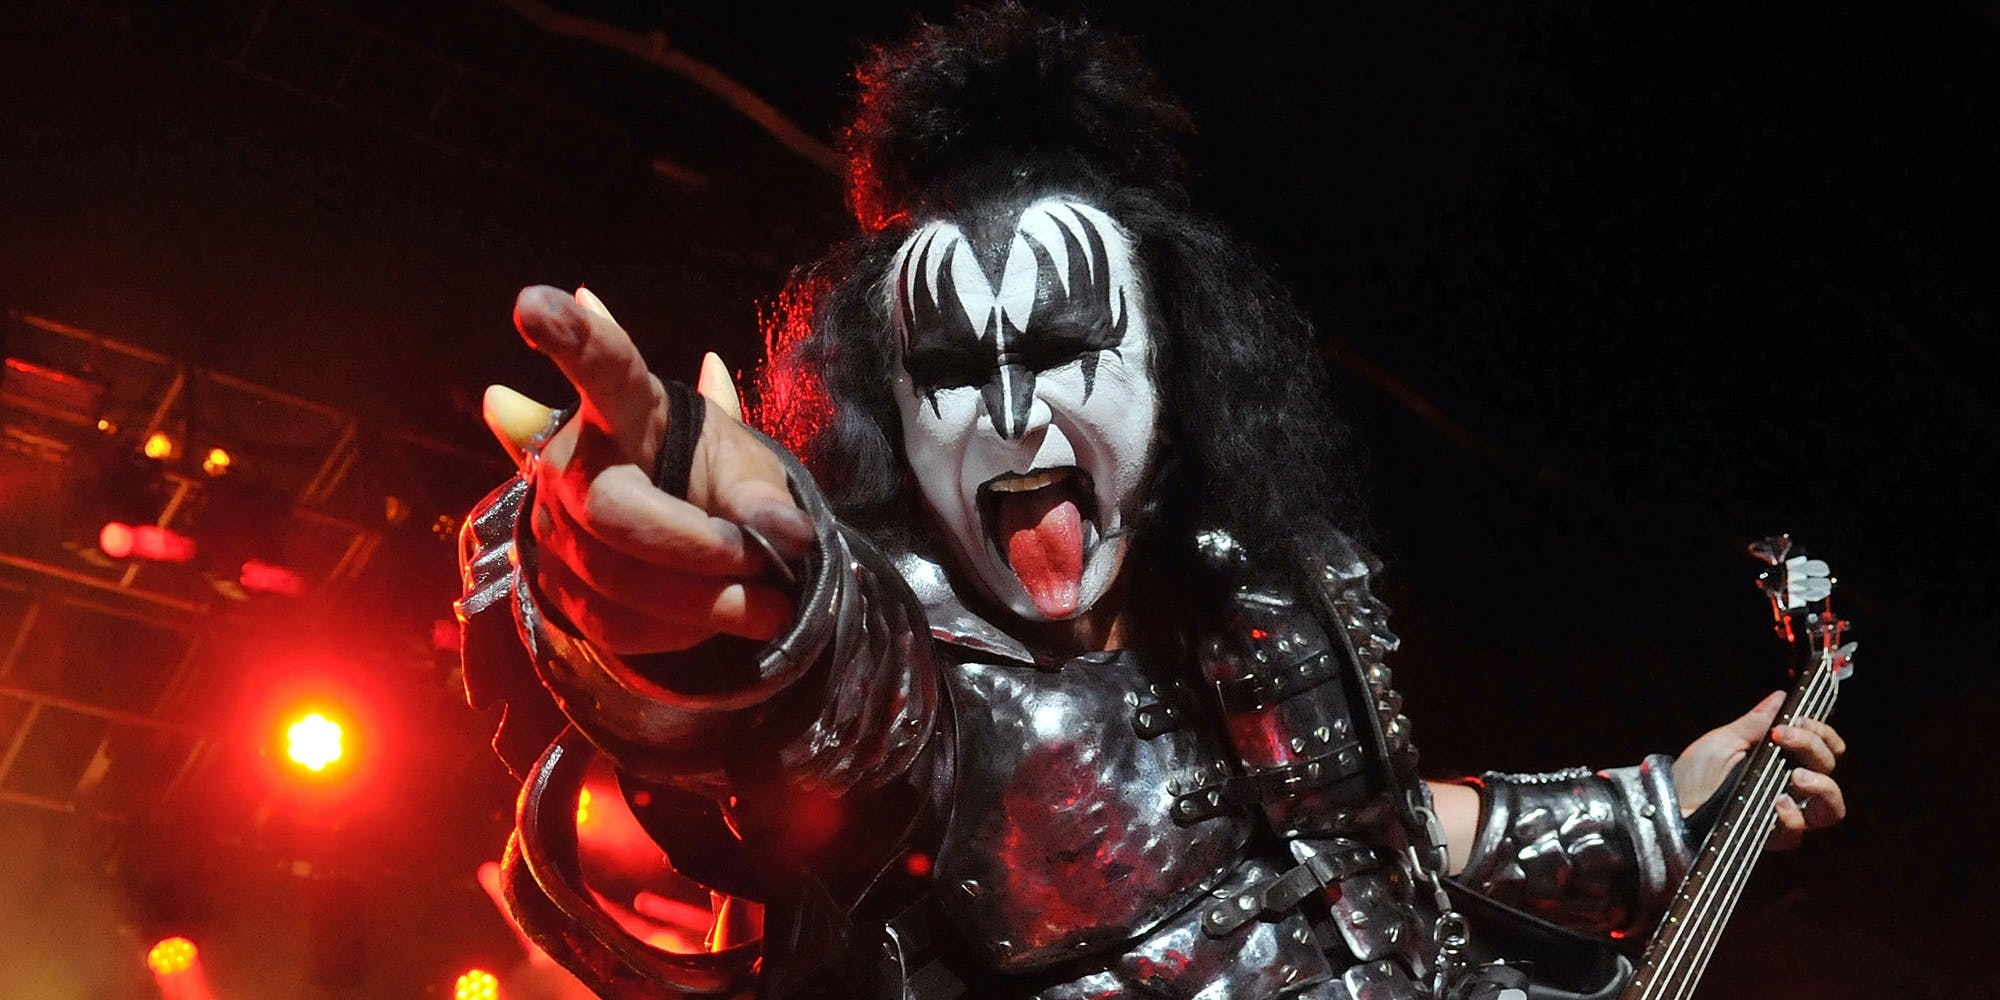 Kiss frontman Gene Simmons Joins the Cannabis Industry